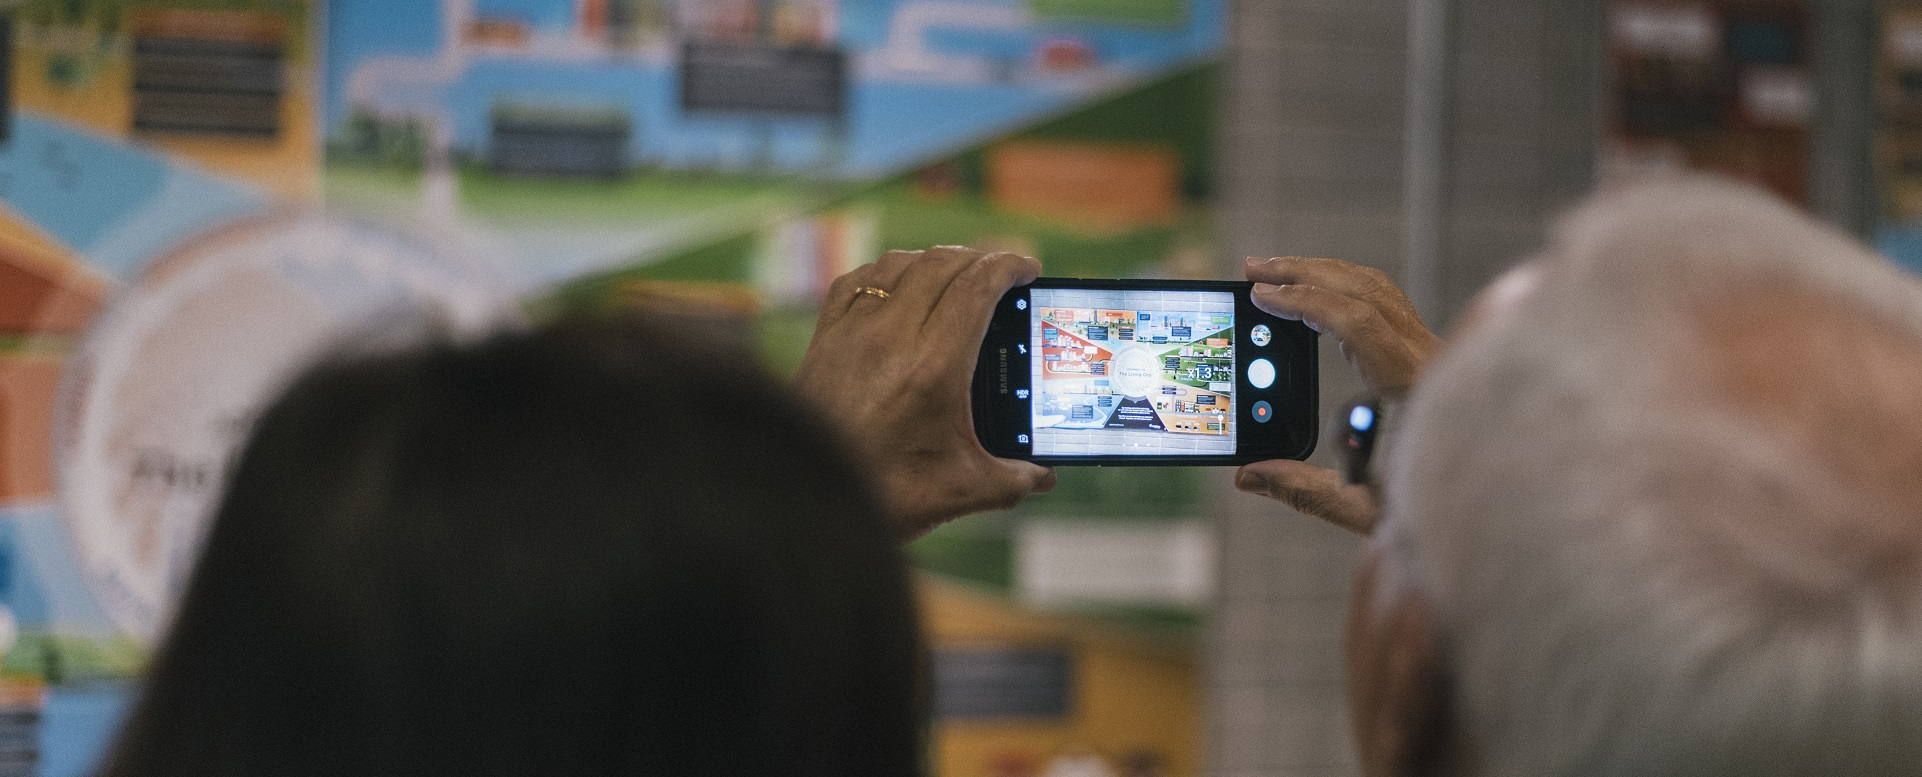 visitor takes photograph of Living City Art Exhibition using phone